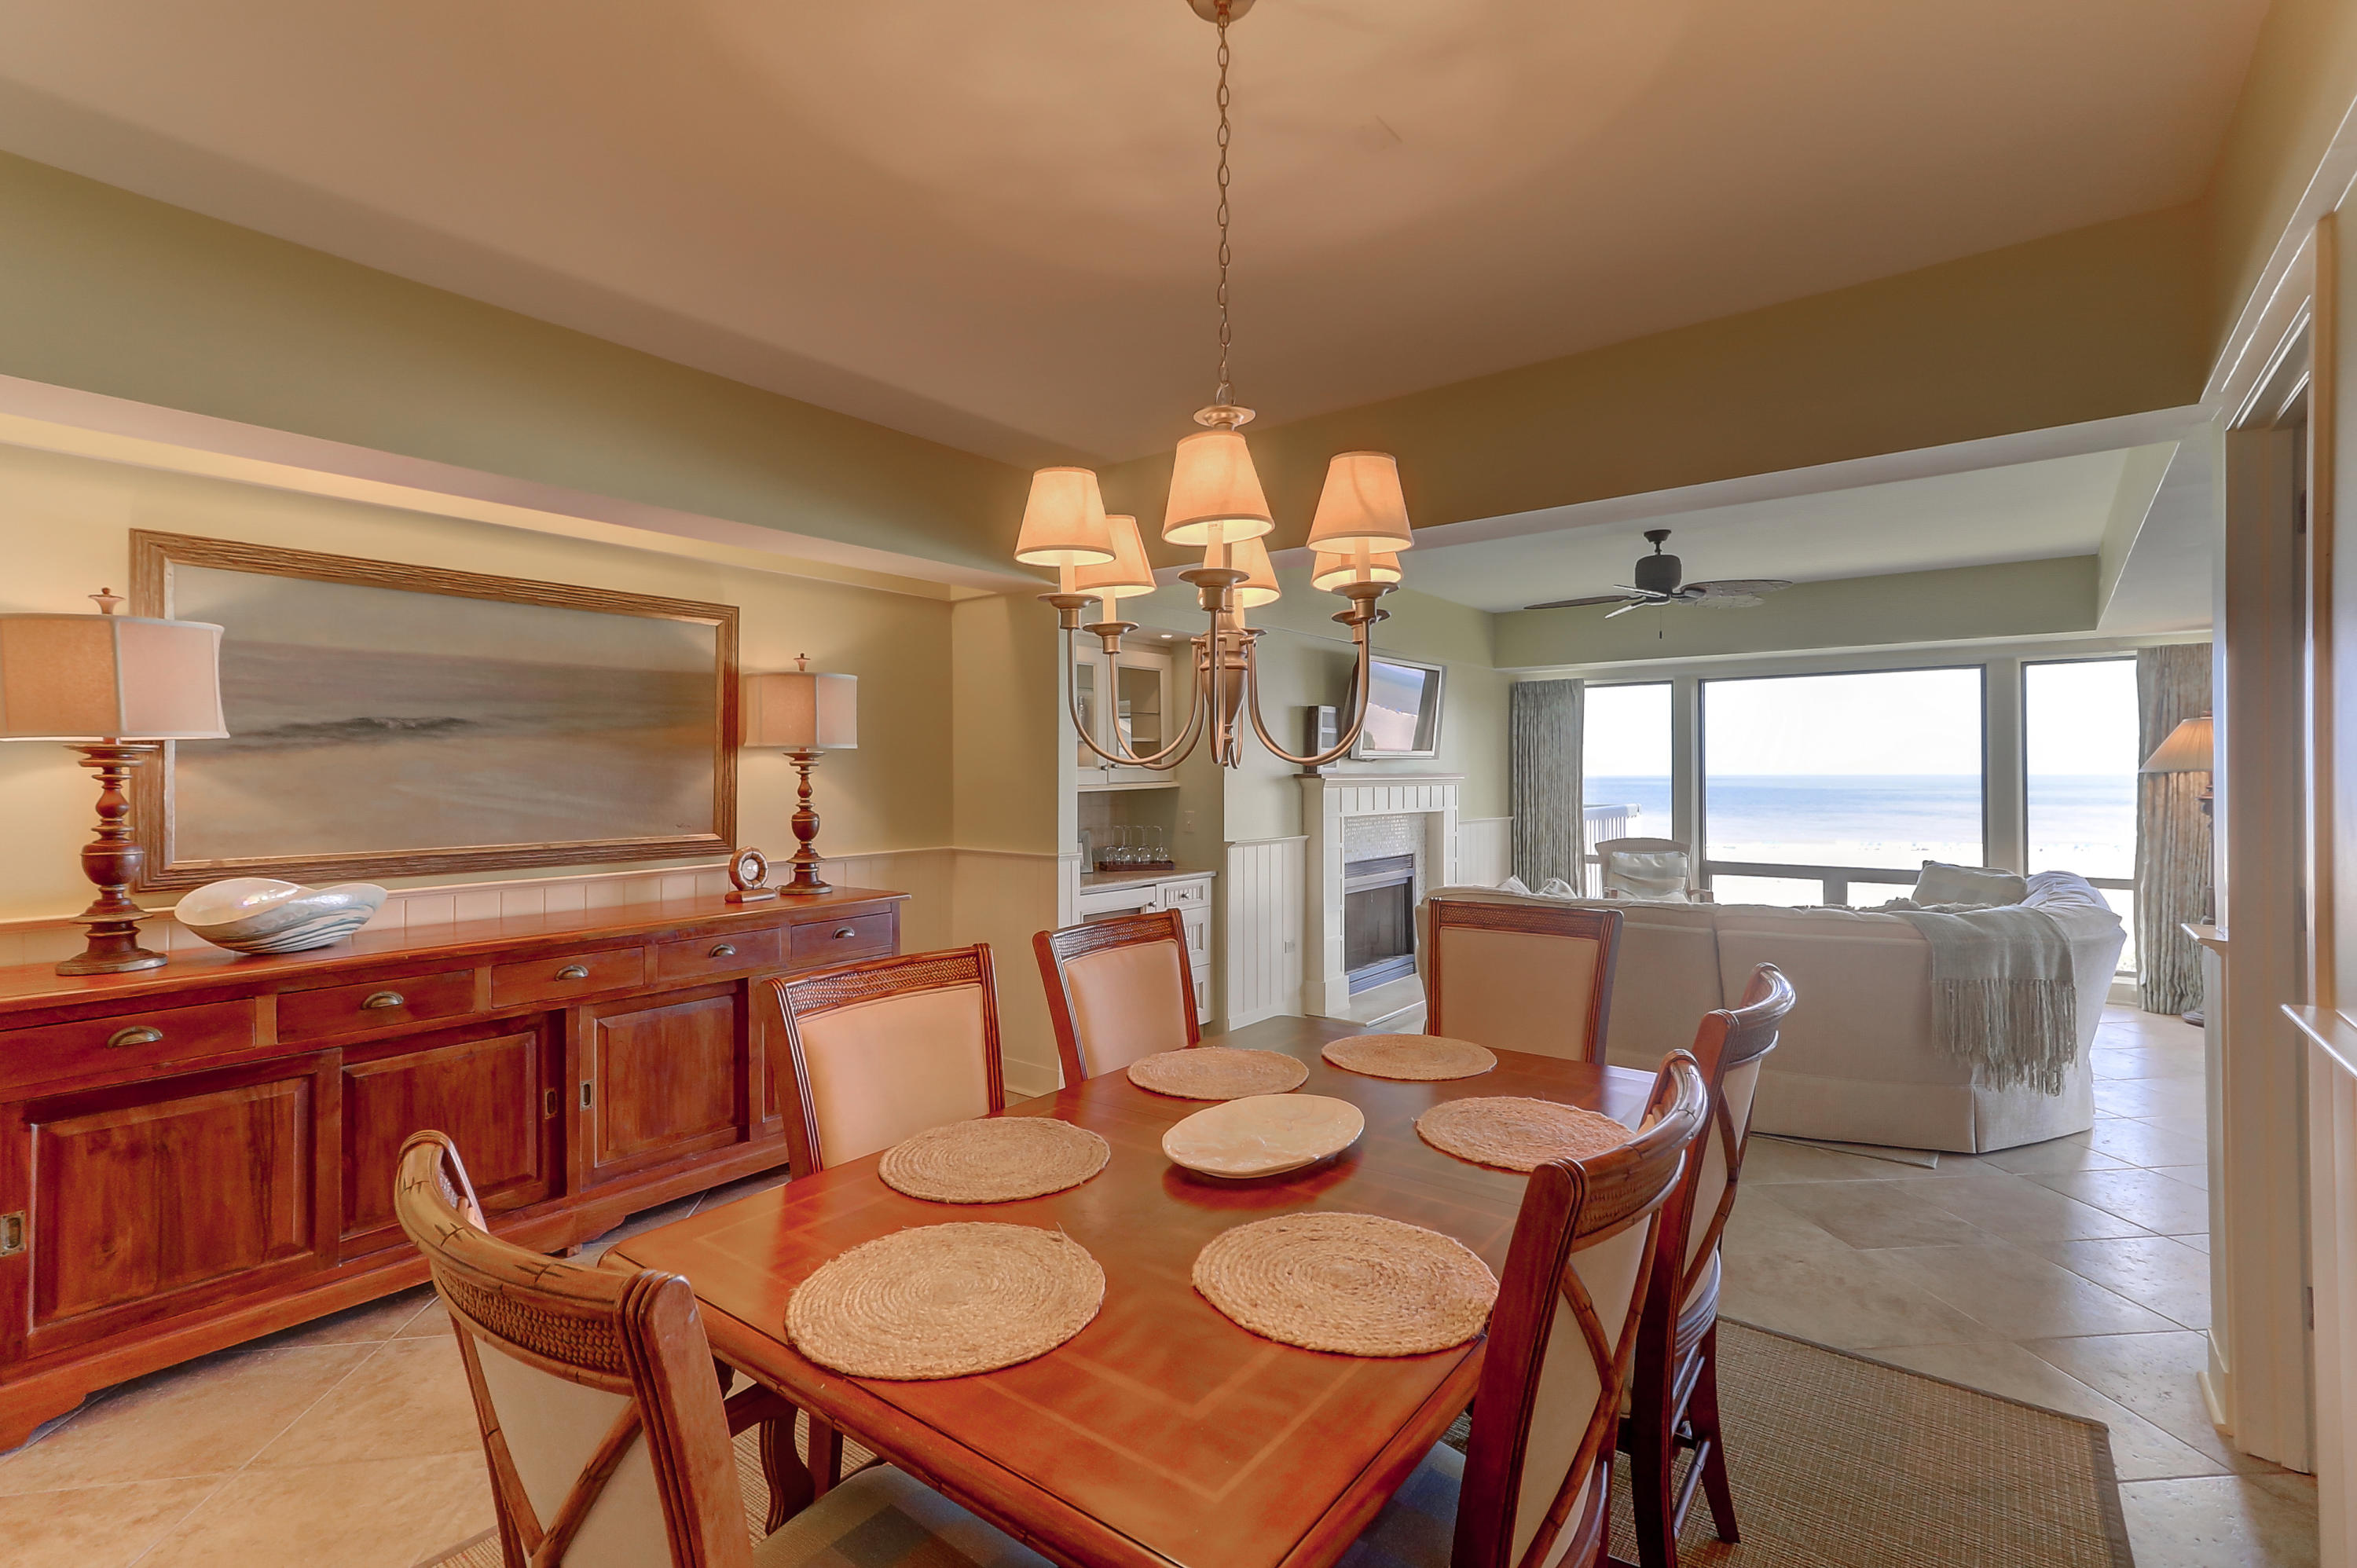 Wild Dunes Homes For Sale - 4402 Ocean Club, Isle of Palms, SC - 23